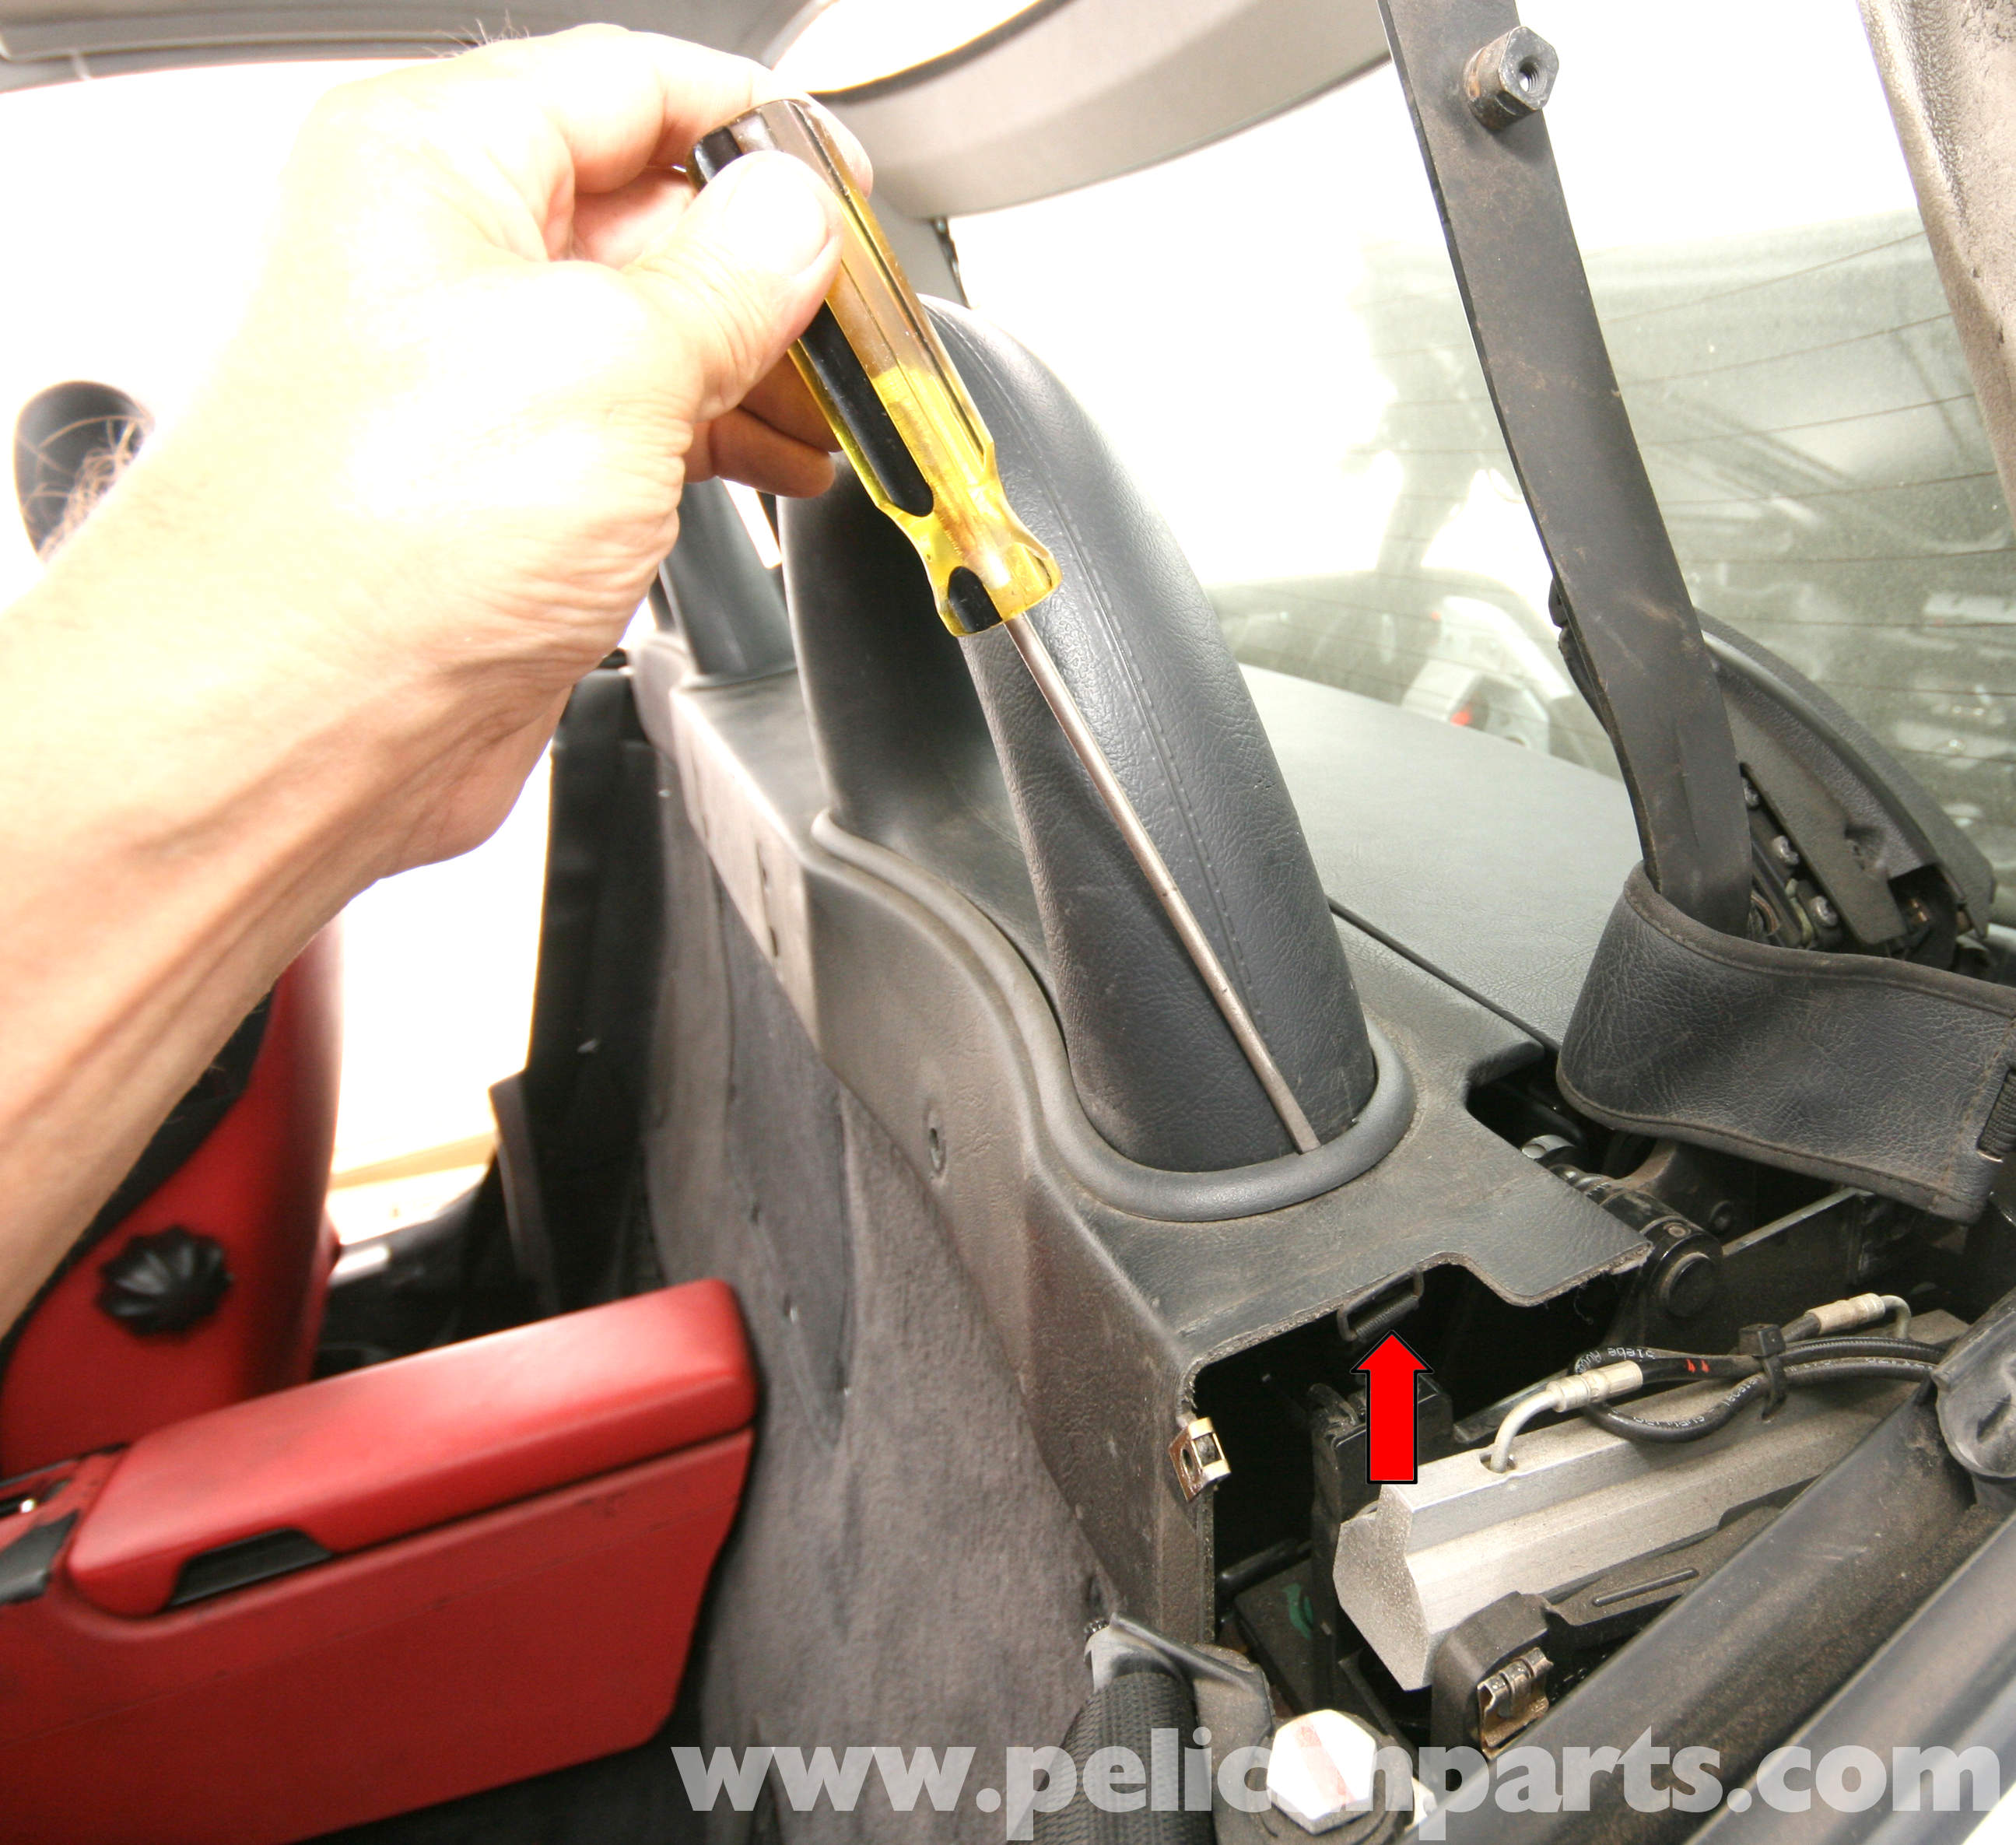 What To Know About Removing Internal Walls: Mercedes-Benz SLK 230 Interior Rear Wall Panel Removal